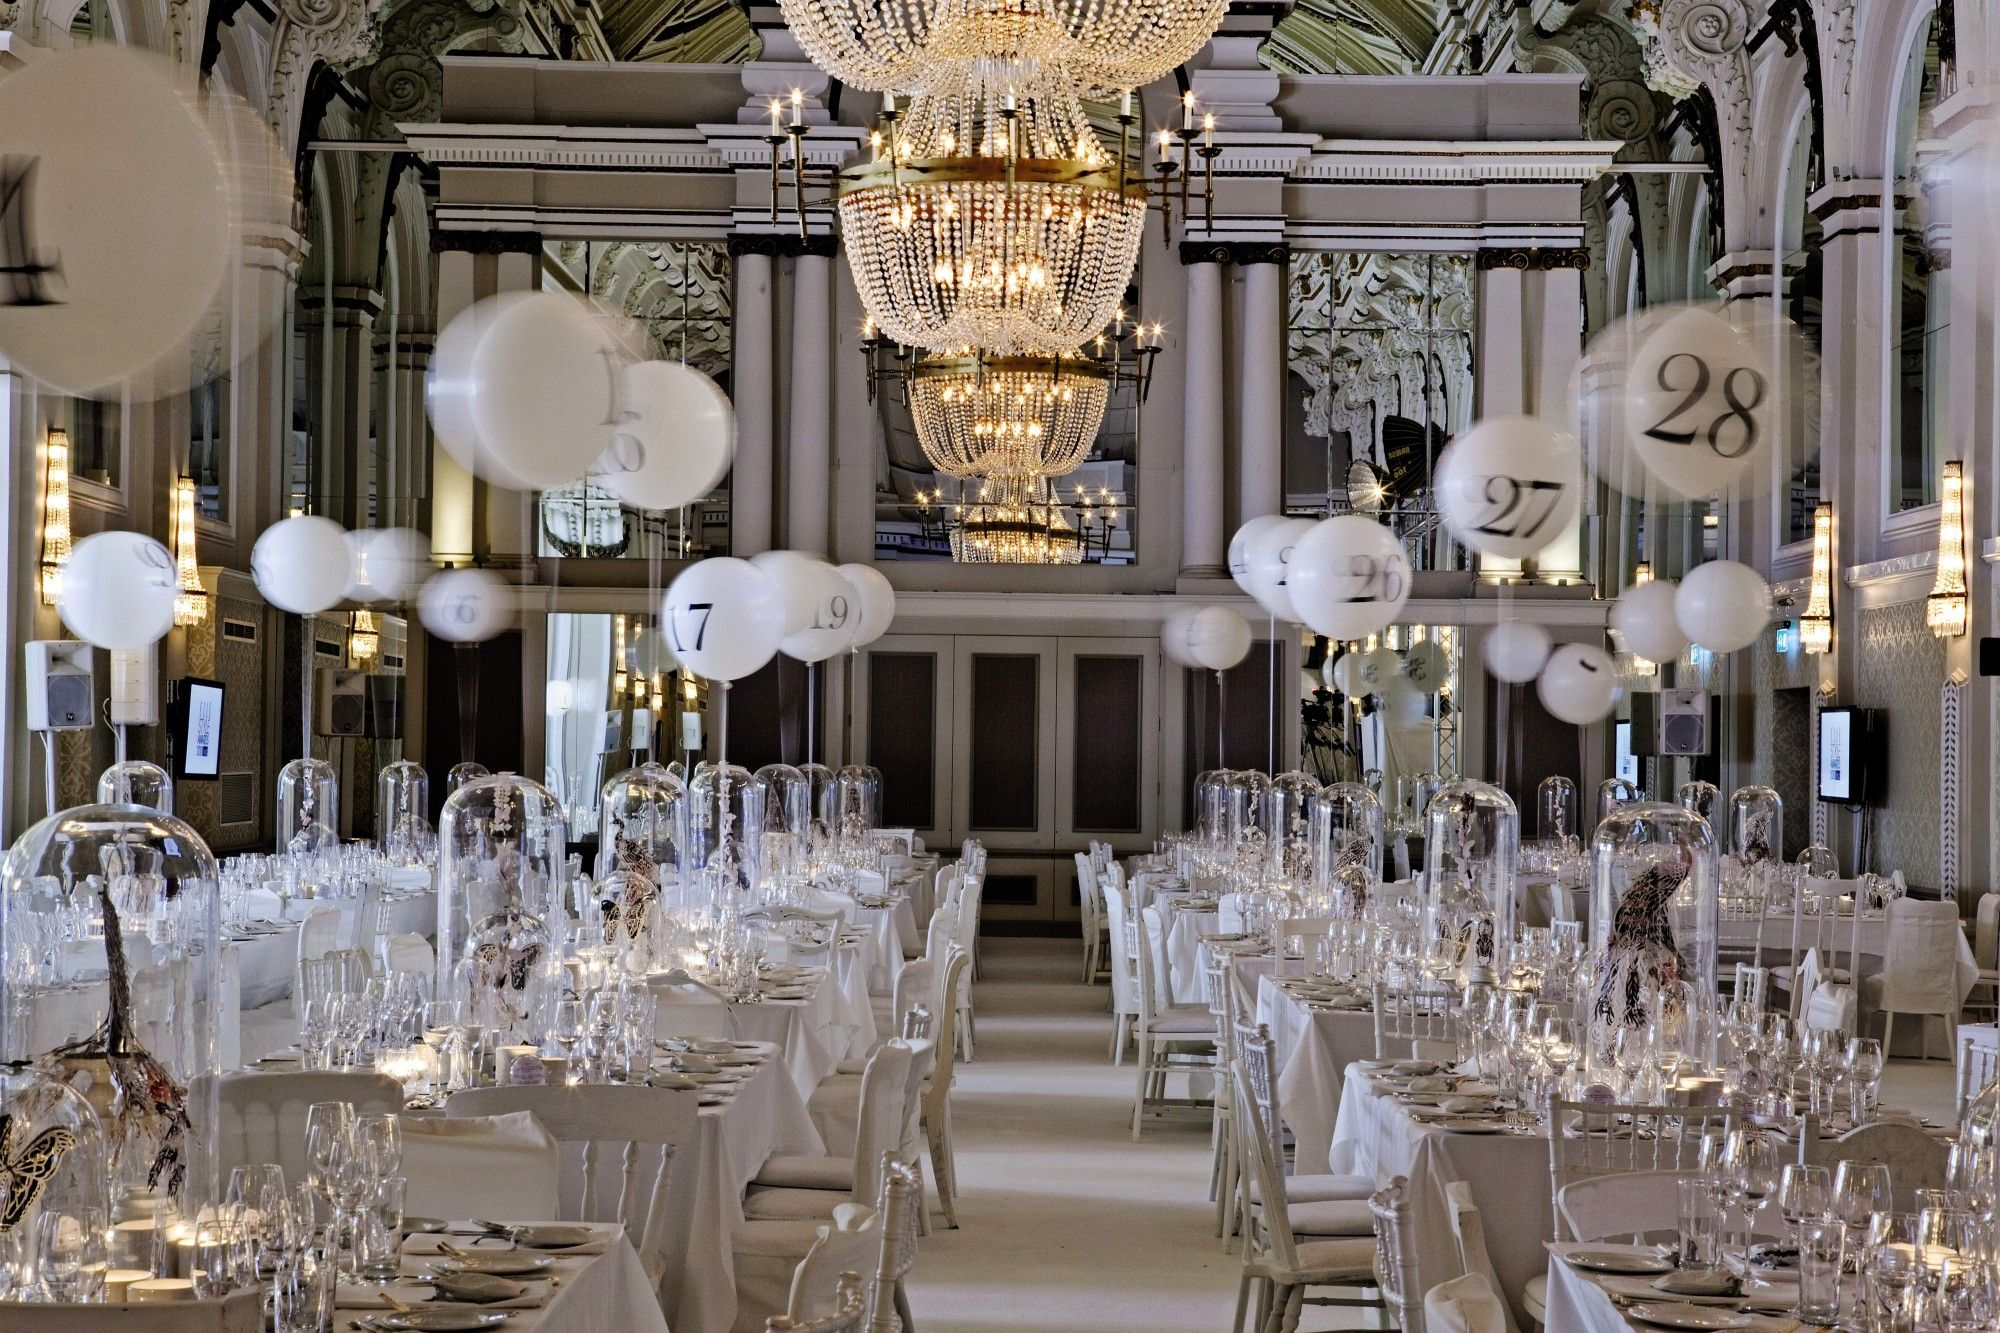 barn wedding venue london%0A Set in cosmopolitan Covent Garden  De Vere Grand Connaught Rooms is one of  London u    s most exclusive wedding venues